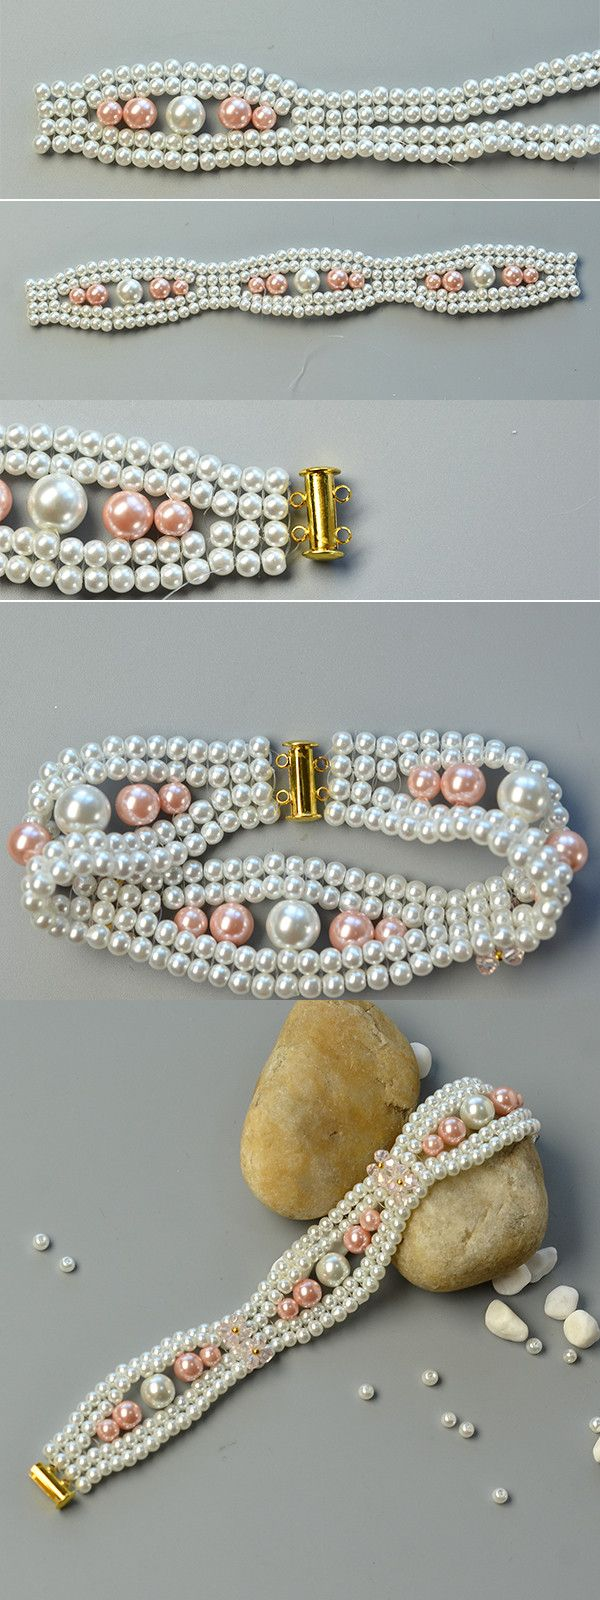 Like the elegant pearl beads bracelet?The tutorial will be shared by LC.Pandahall.com soon.